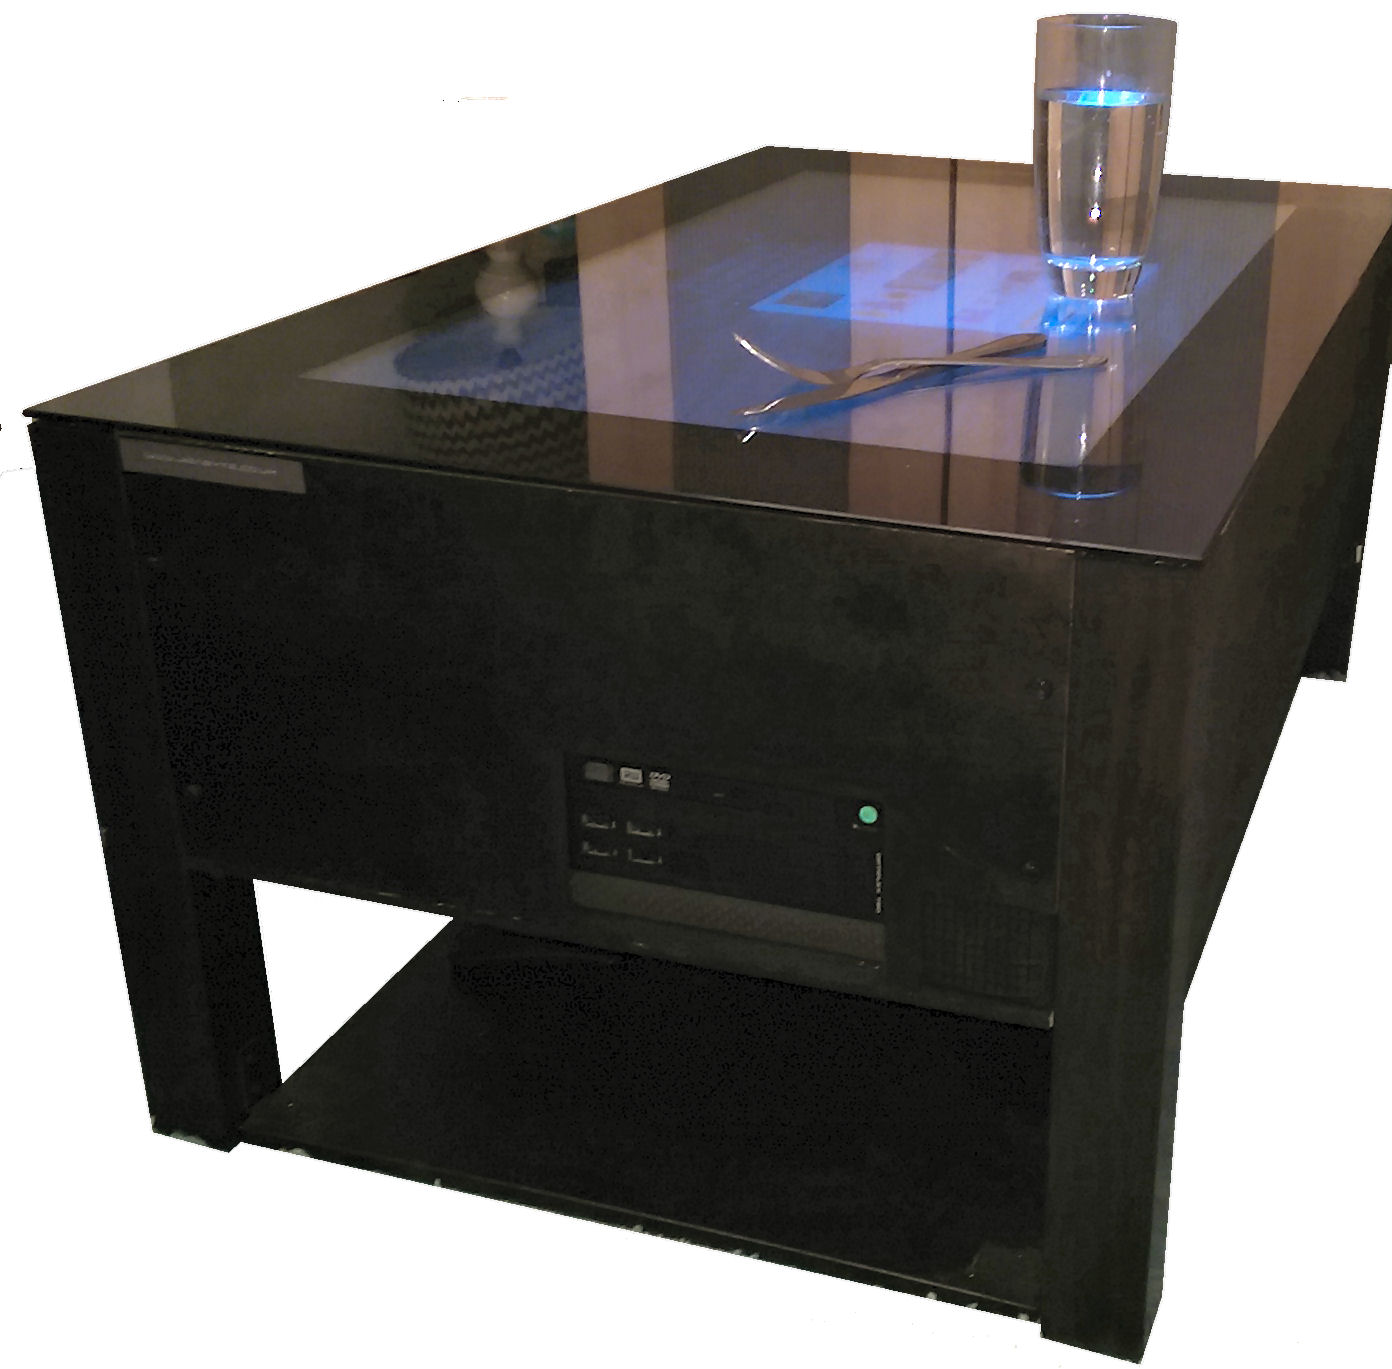 Jigabyte Touch Screen Coffee Table The Digital Heart Of Your